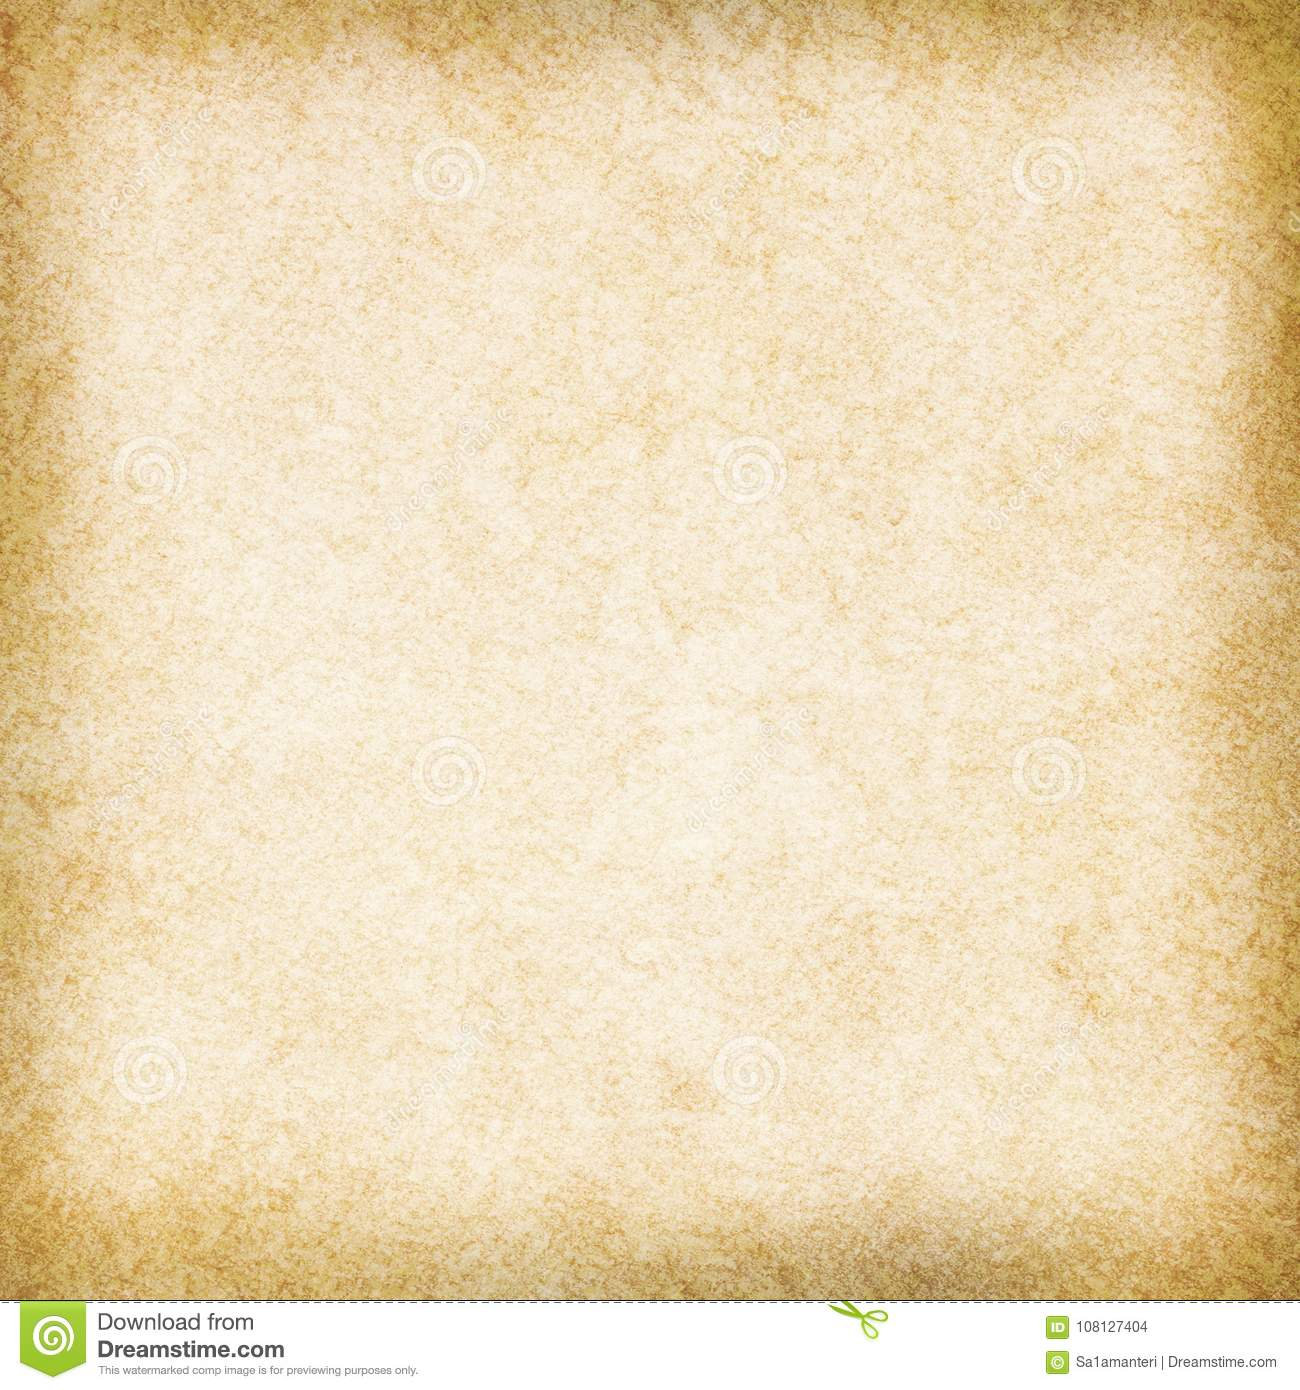 Empty Old Paper Vintage Background Stock Illustration - Illustration of  empty, grungy: 108127404